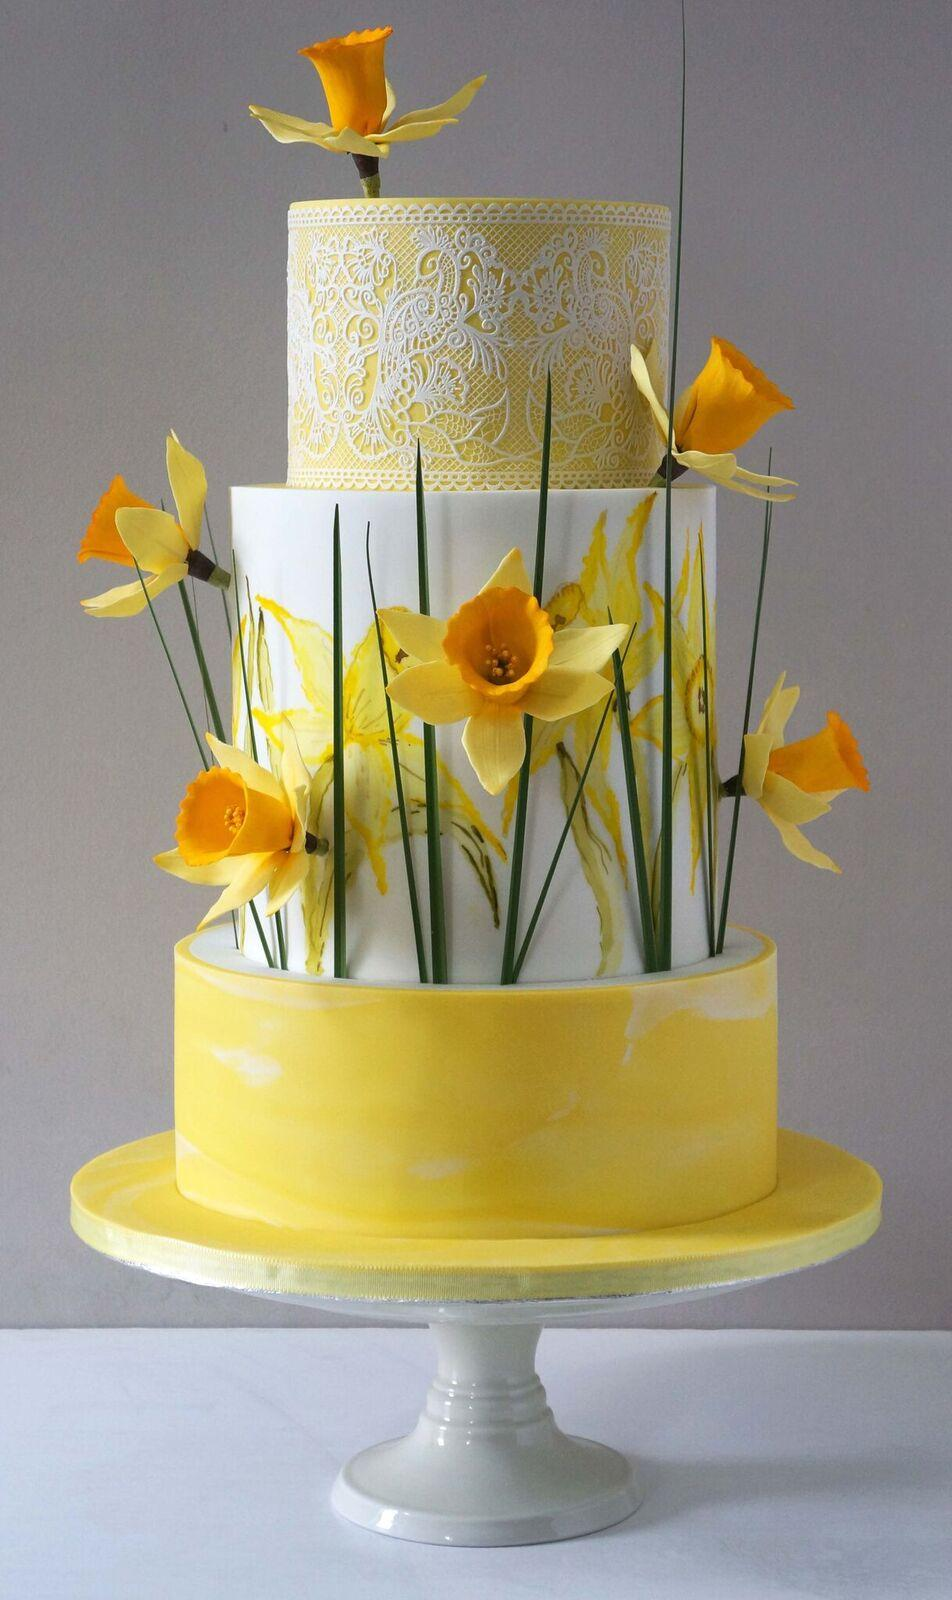 Yellow and white daffodil fondant wedding cake